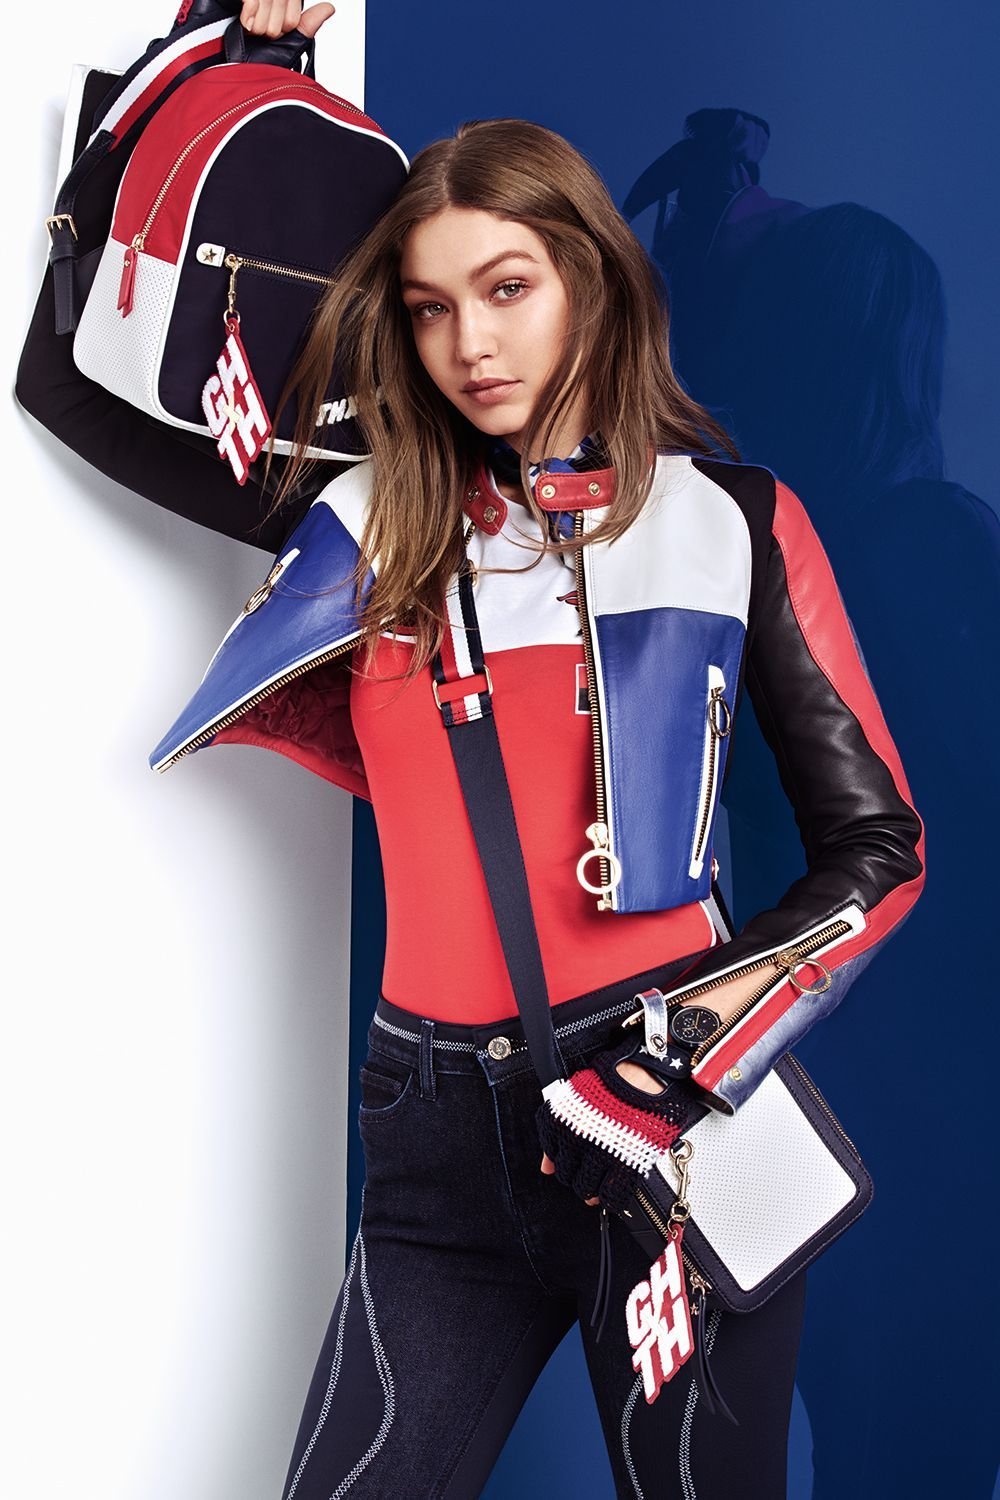 cd5875fd745c59 Gigi Hadid and Tommy Hilfiger Unveil a New Racing-Inspired Collection -  HarpersBAZAAR.com